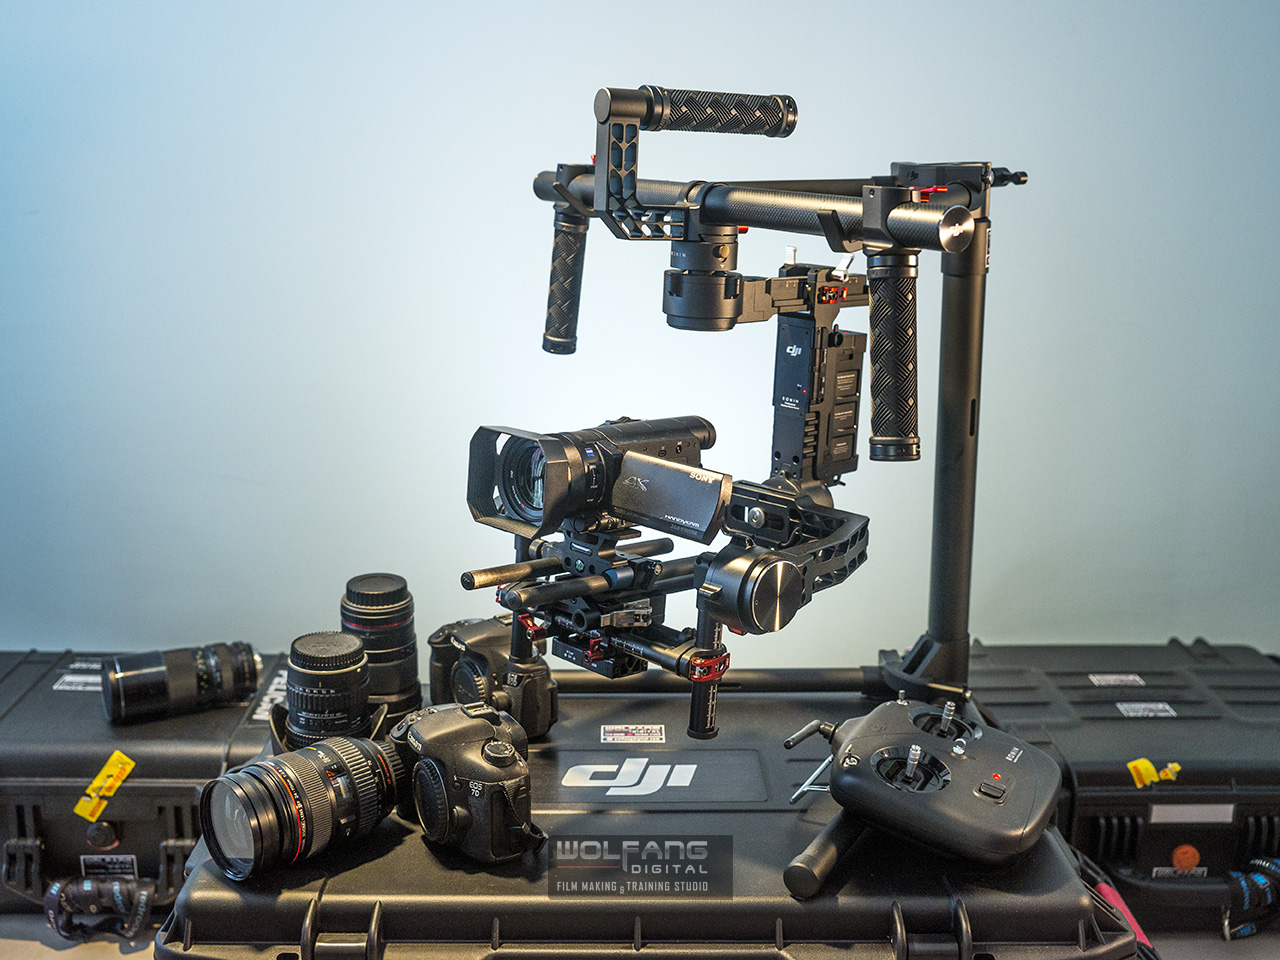 DJI ronin gimbal for rental with Certified Steadicam Operator